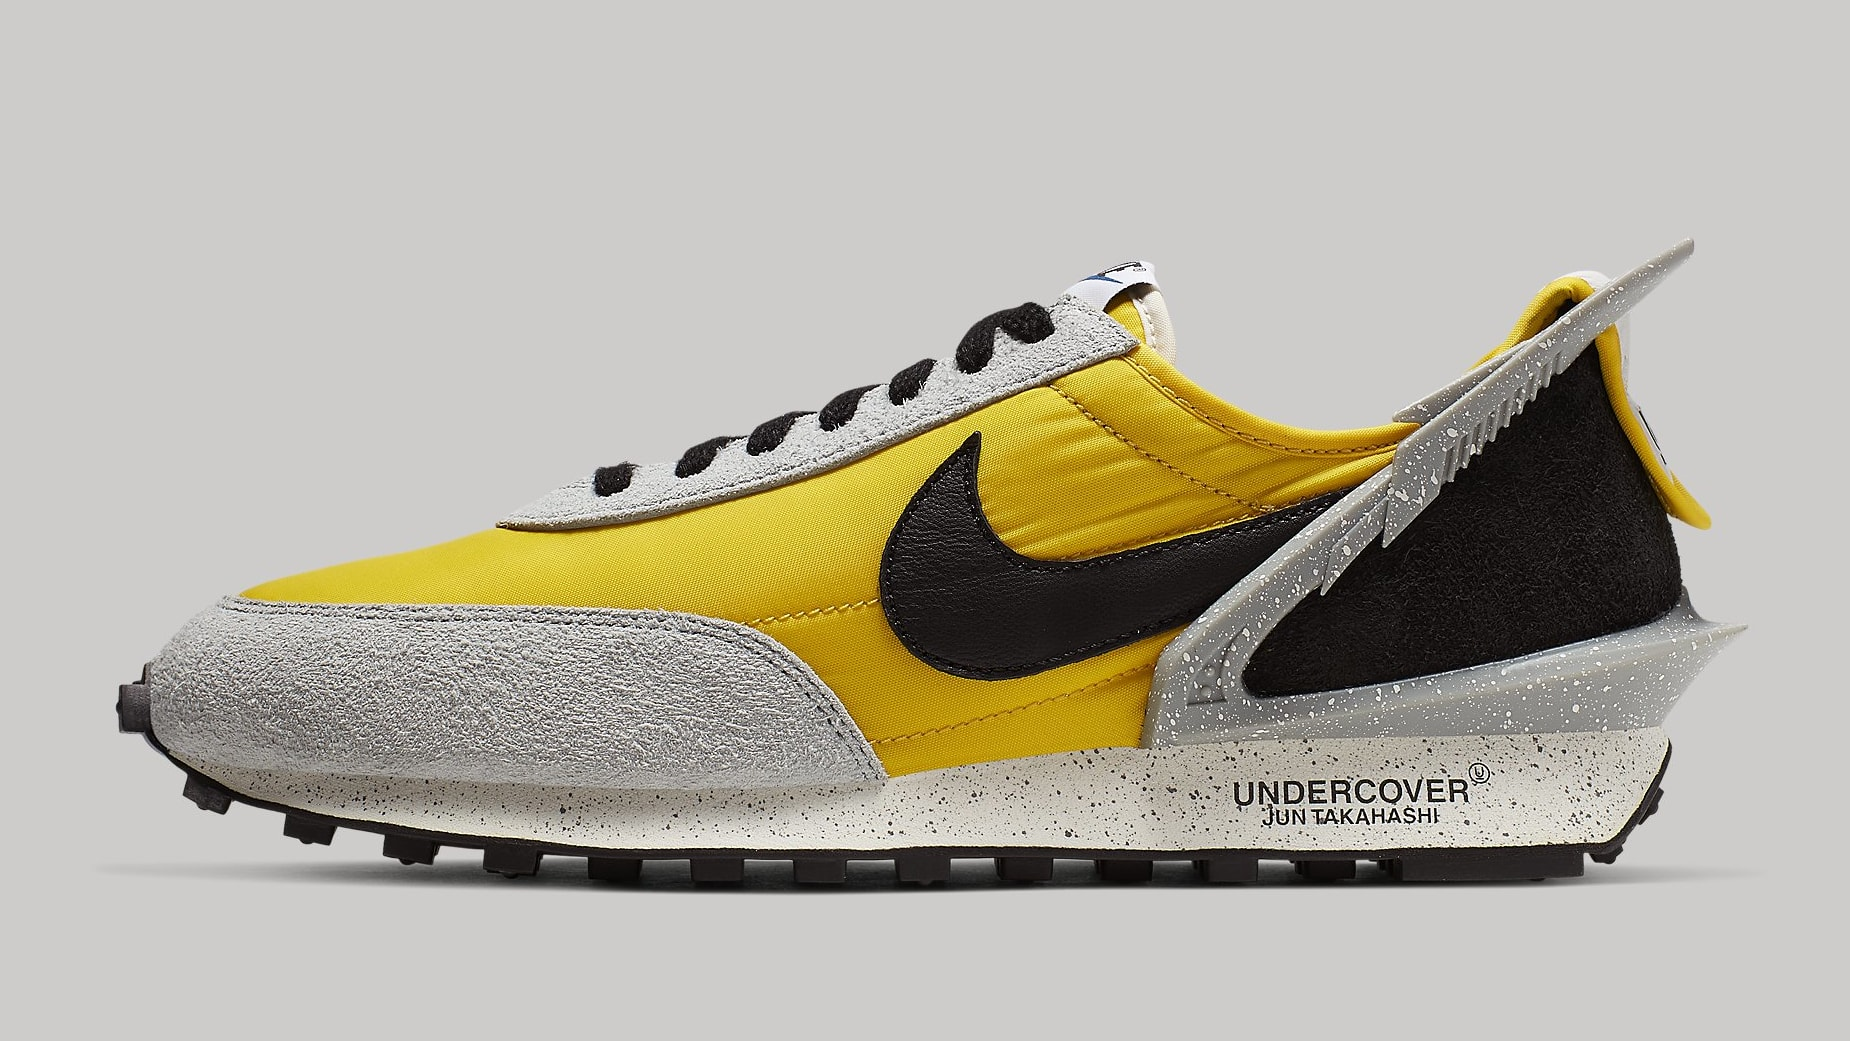 sneakers for cheap c867f 0259b Undercover x Nike Daybreak 'Bright Citron' BV4594-700 ...